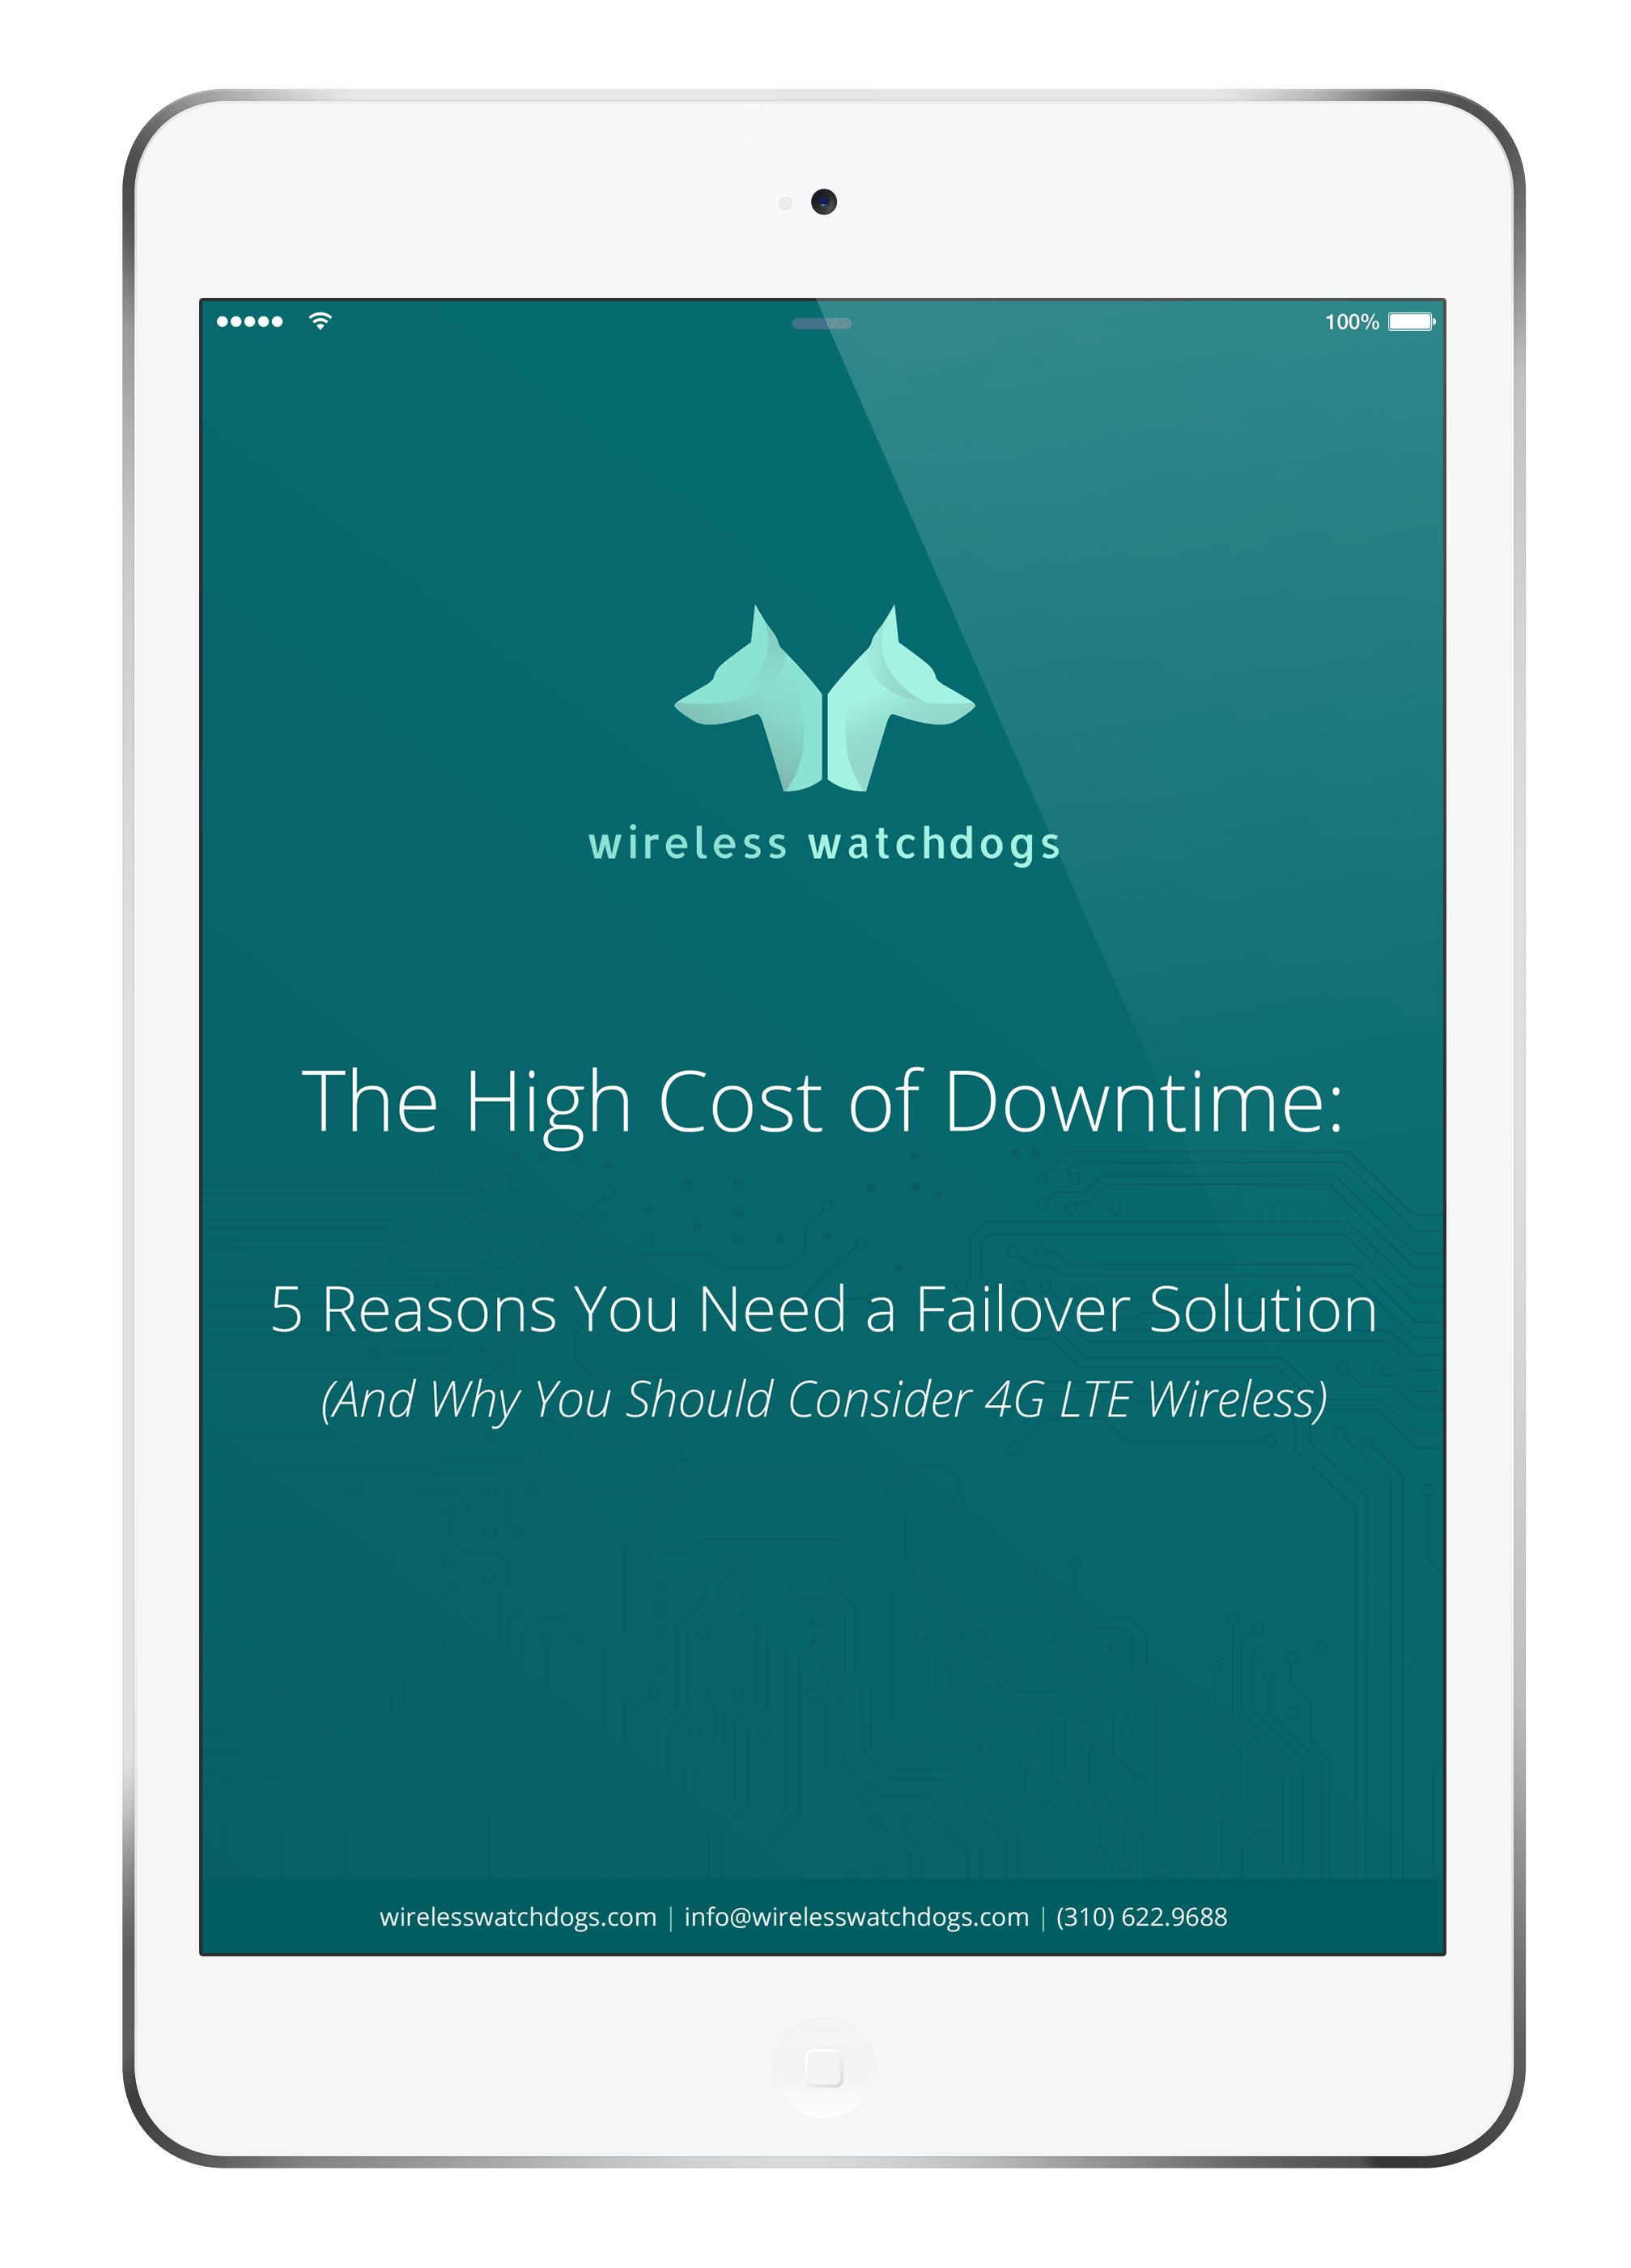 High Cost Downtime download